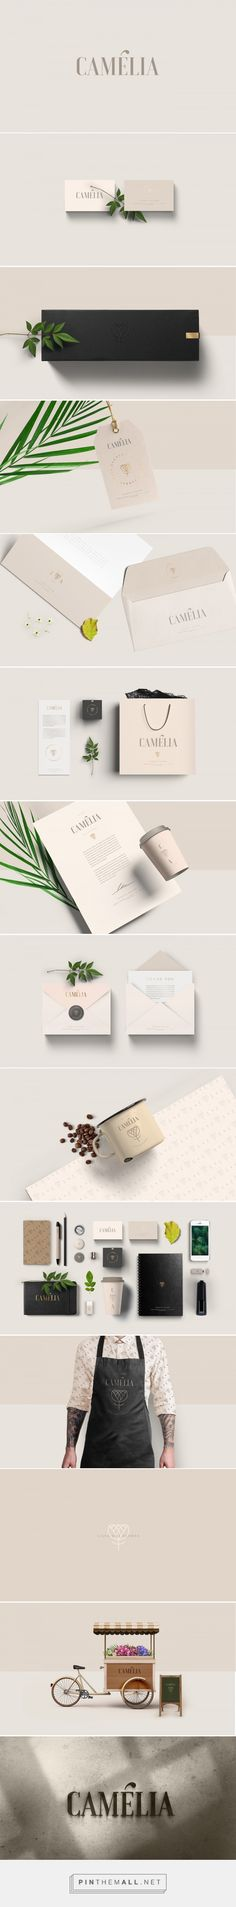 Camélia Florist Branding by Estudio Alice | Fivestar Branding Agency – Design and Branding Agency & Curated Inspiration Gallery